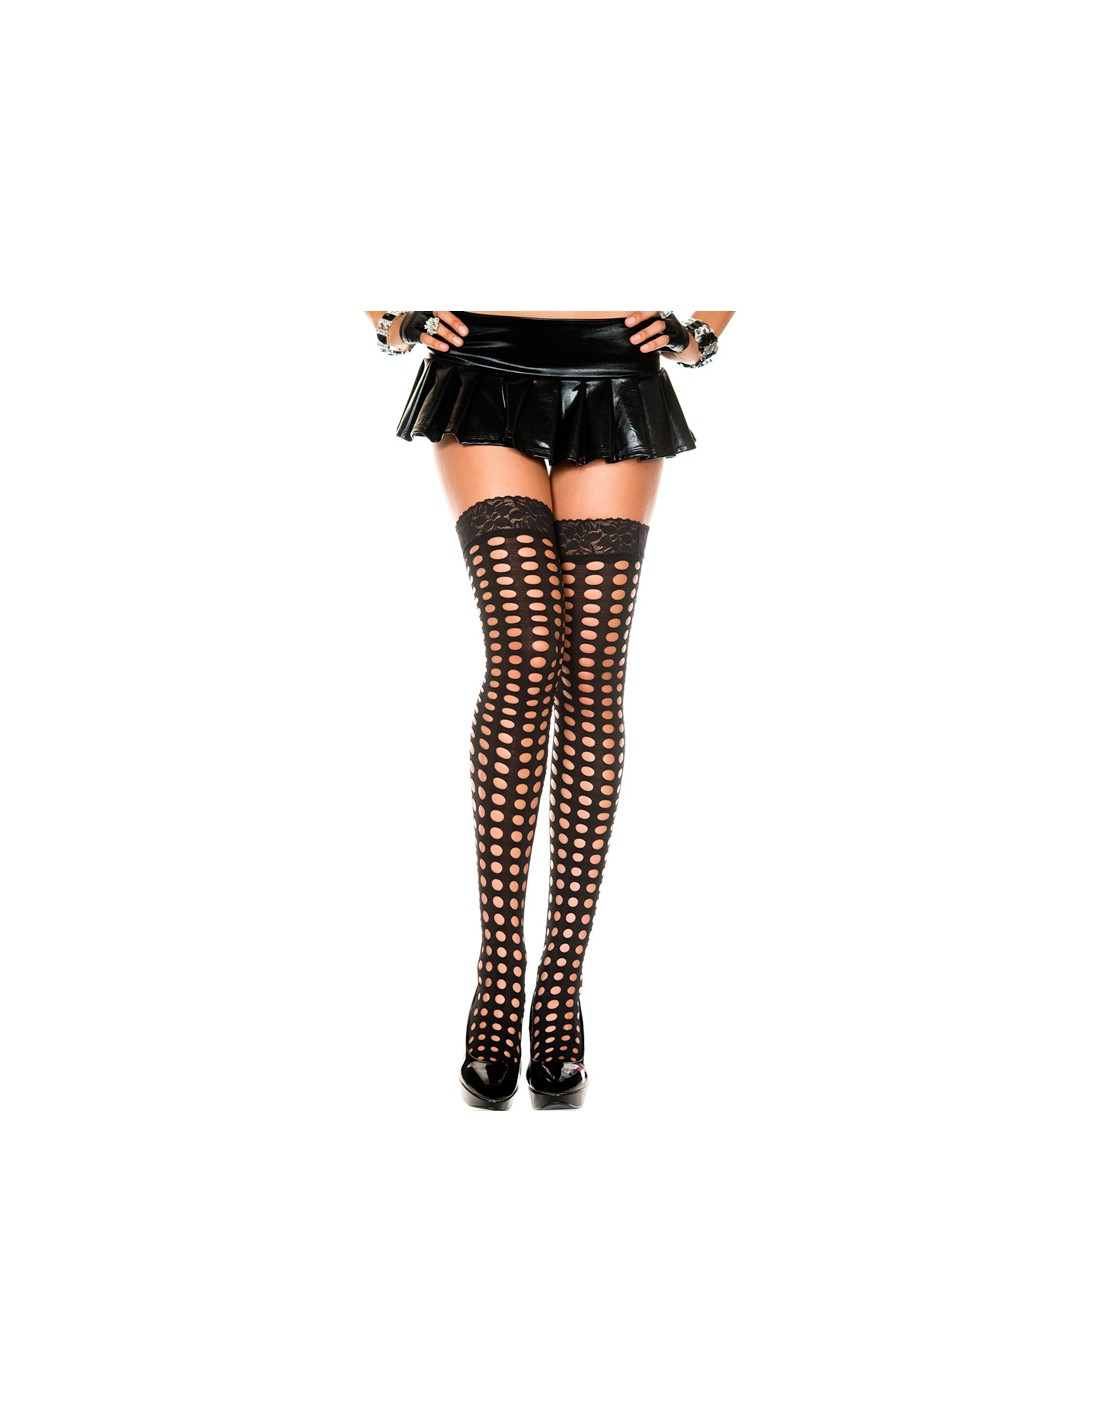 Stockings With Round Openings And Lace Top - Black